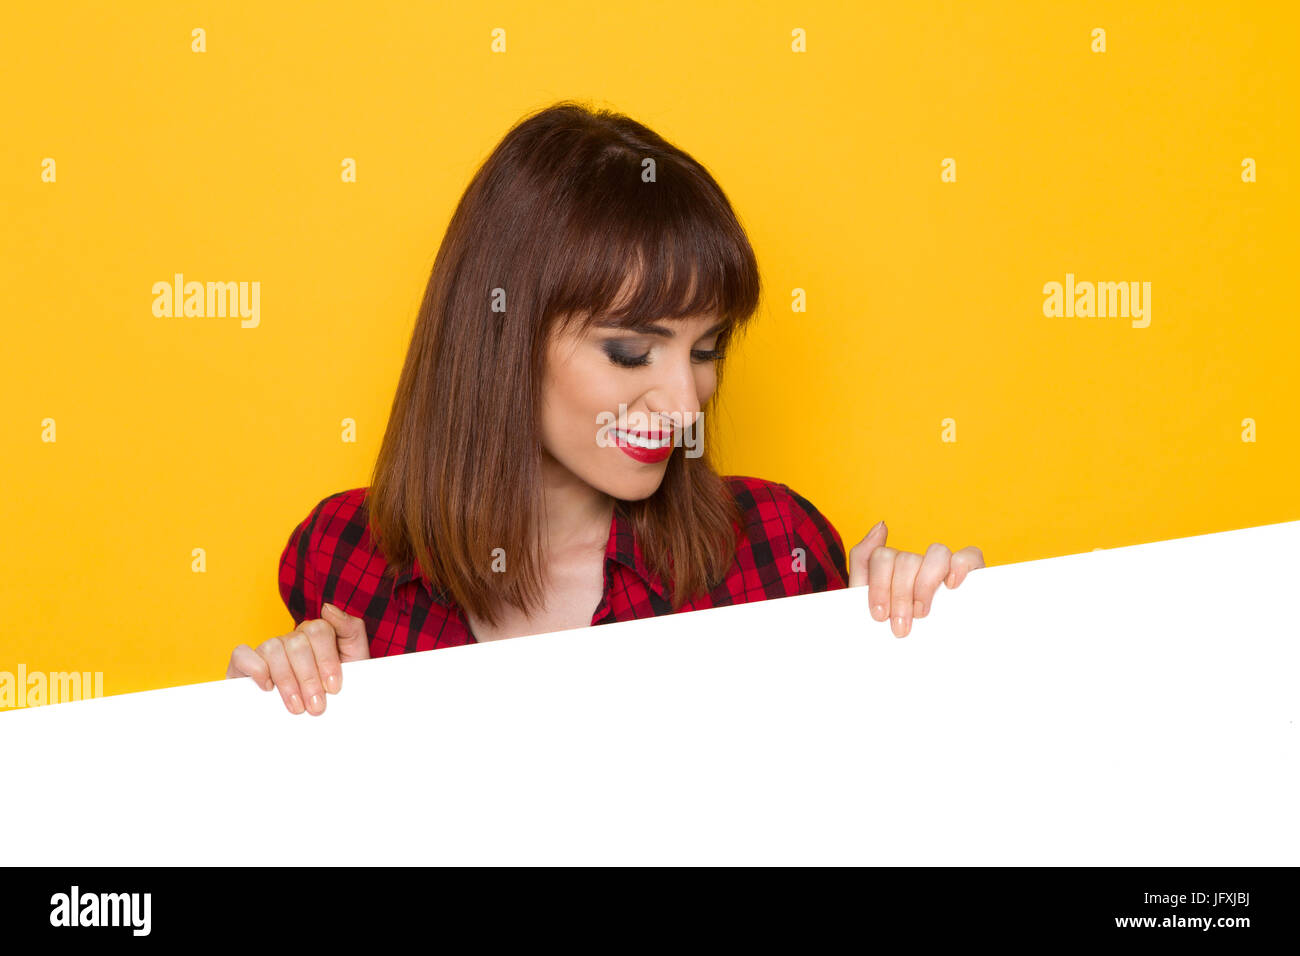 Smiling young woman posing behind white copy space looking down and reading. Head and shoulders studio shot on yellow - Stock Image